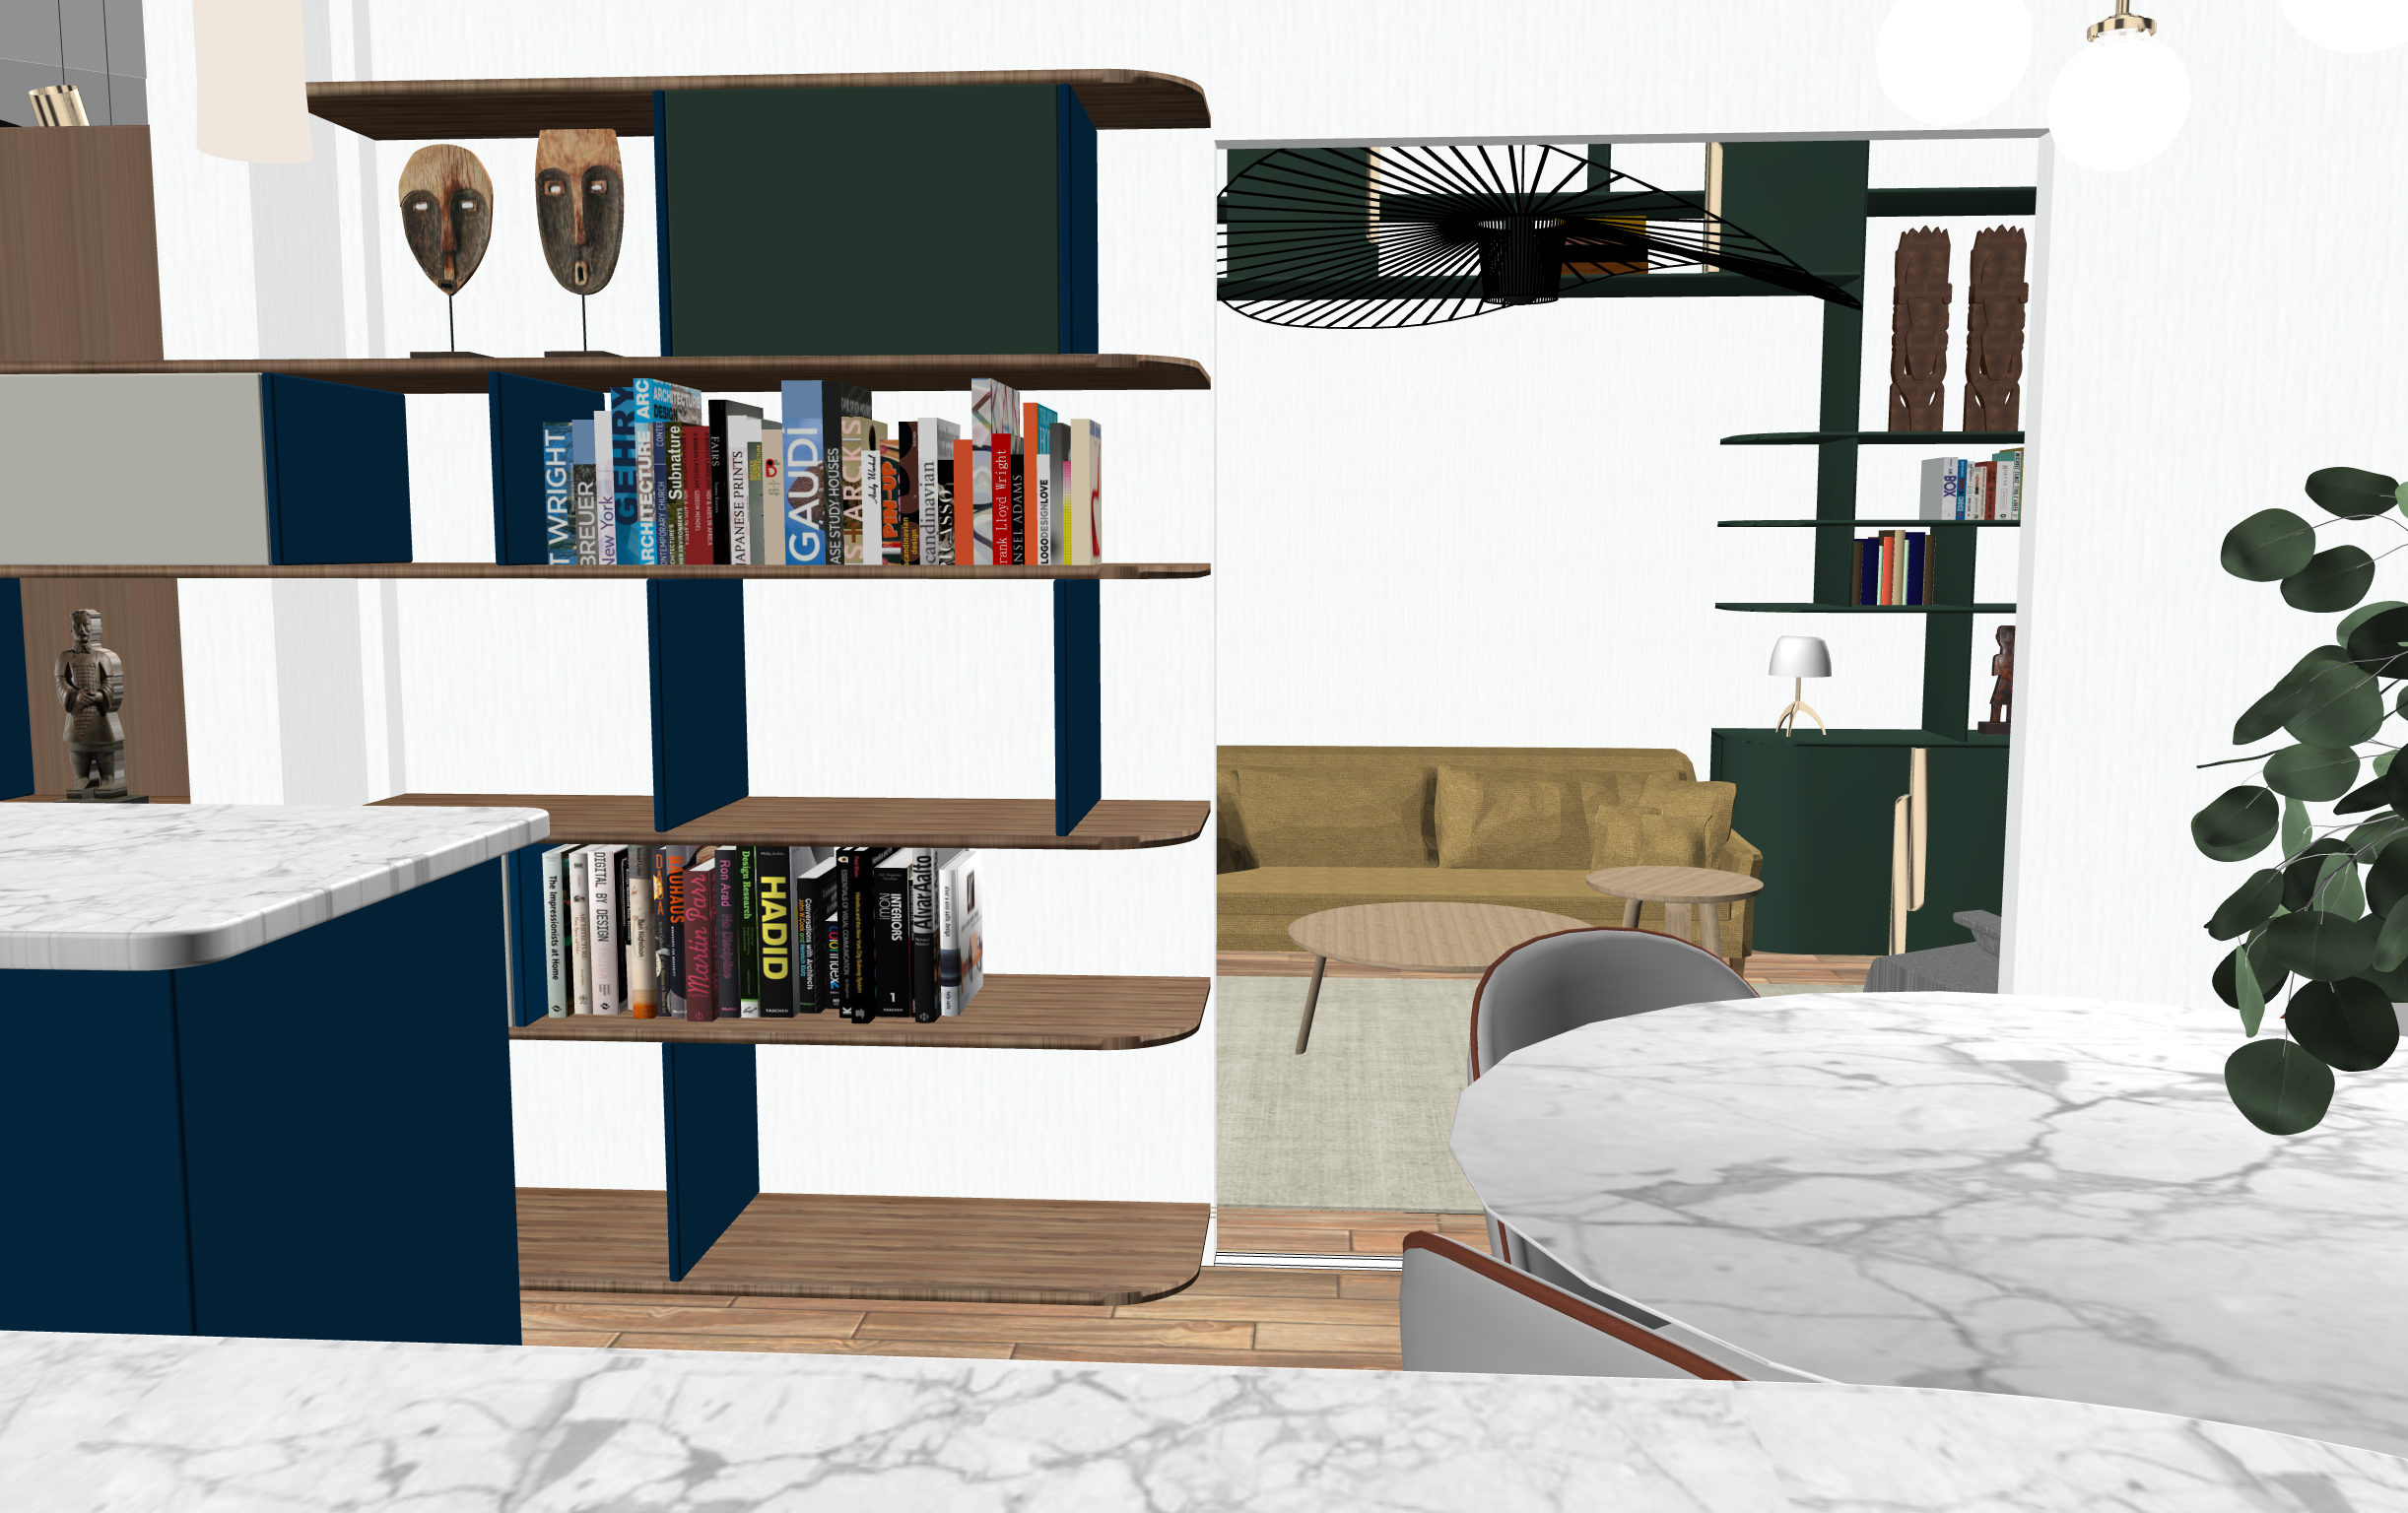 maison_bou_2019_neuilly_3d_11.png